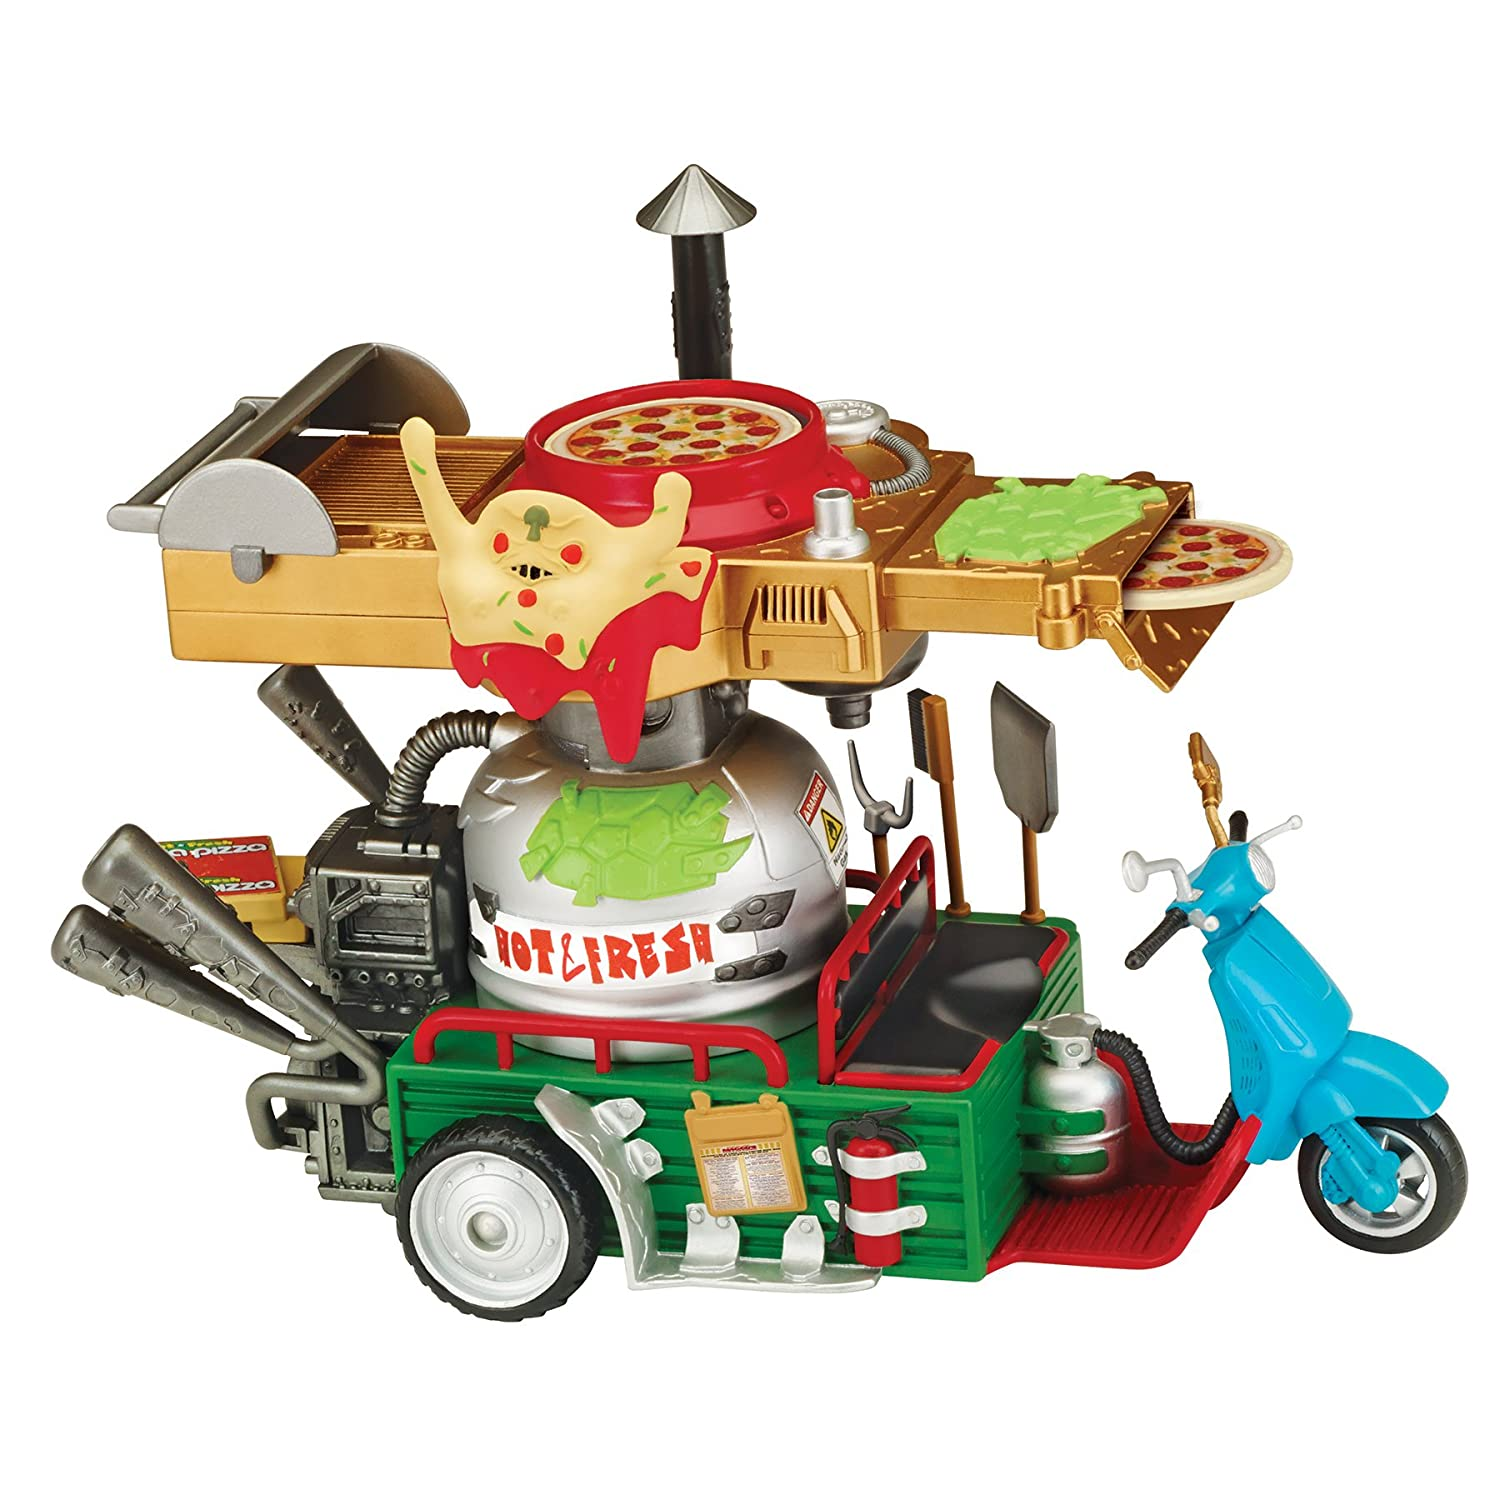 Teenage Mutant Ninja Turtles Pizza Thrower Vehicle: Amazon ...